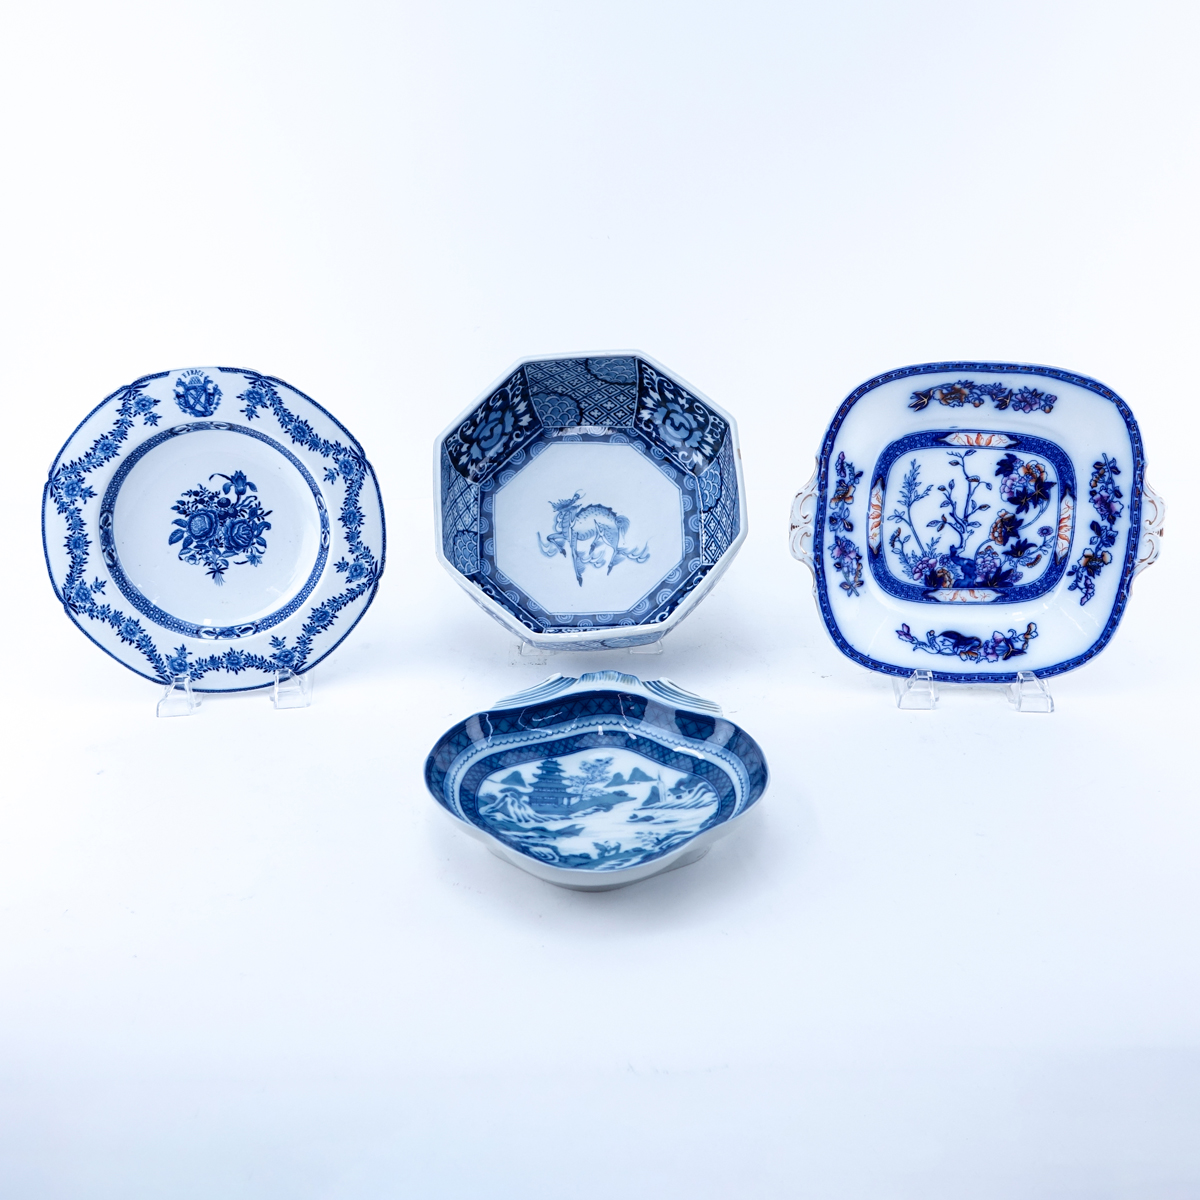 Four Pieces Blue & White Pottery Decorative Table Top Items. Includes a Mottahedeh Chinese motif dish, a flow blue platter, a Chinese bowl and an unsigned dish.